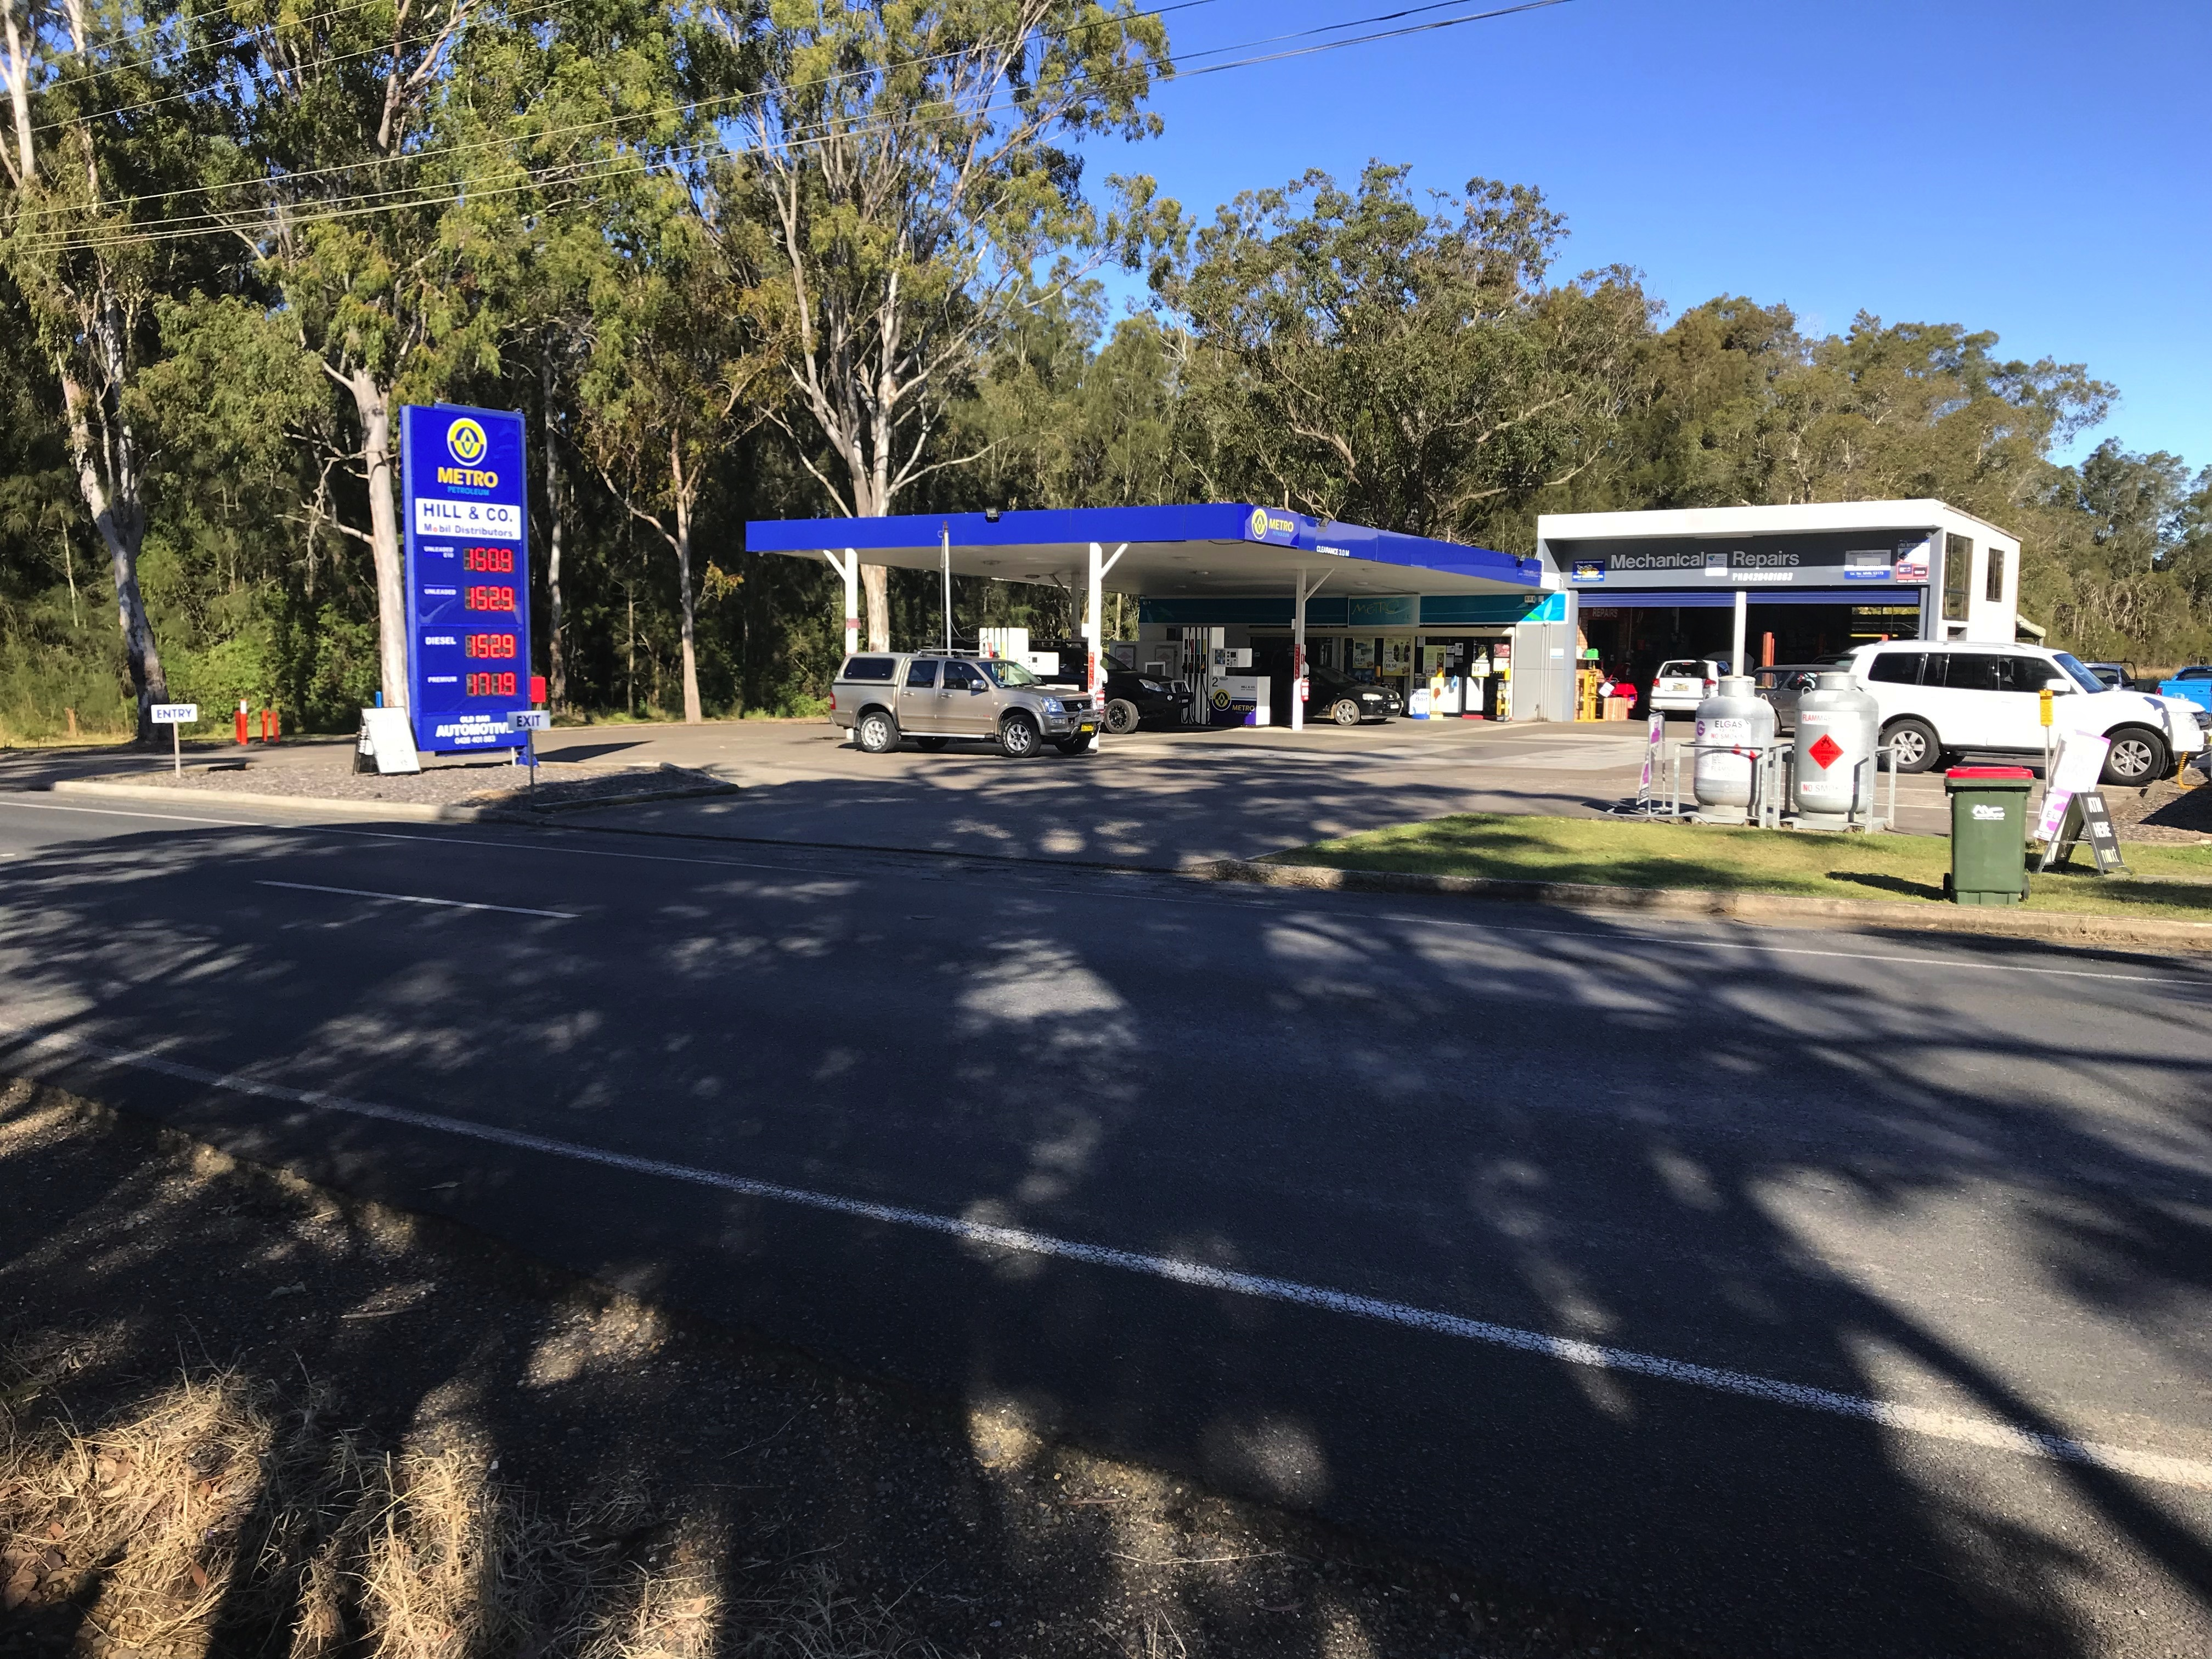 Service Station Business For Sale with NO COMPETITION in town - East Coast NSW